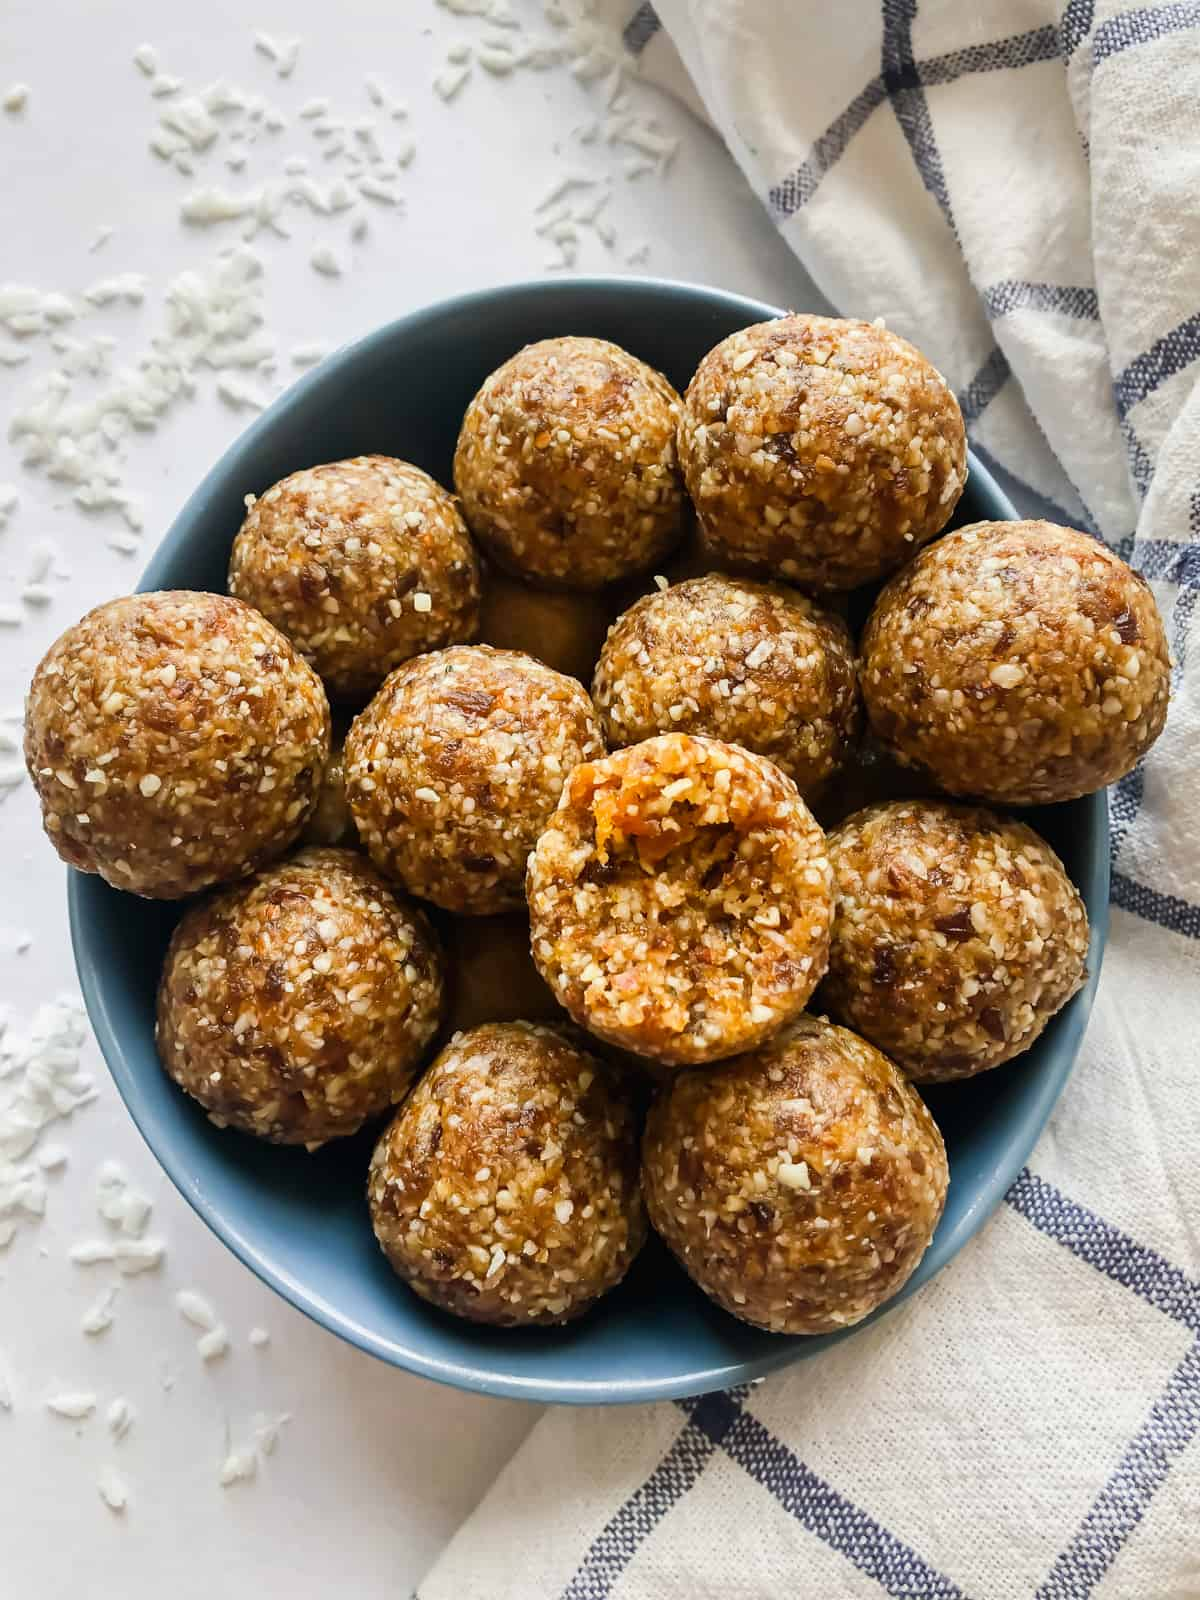 apricot bliss balls in a bowl surrounded by shredded coconut and a blue/white cloth napkin